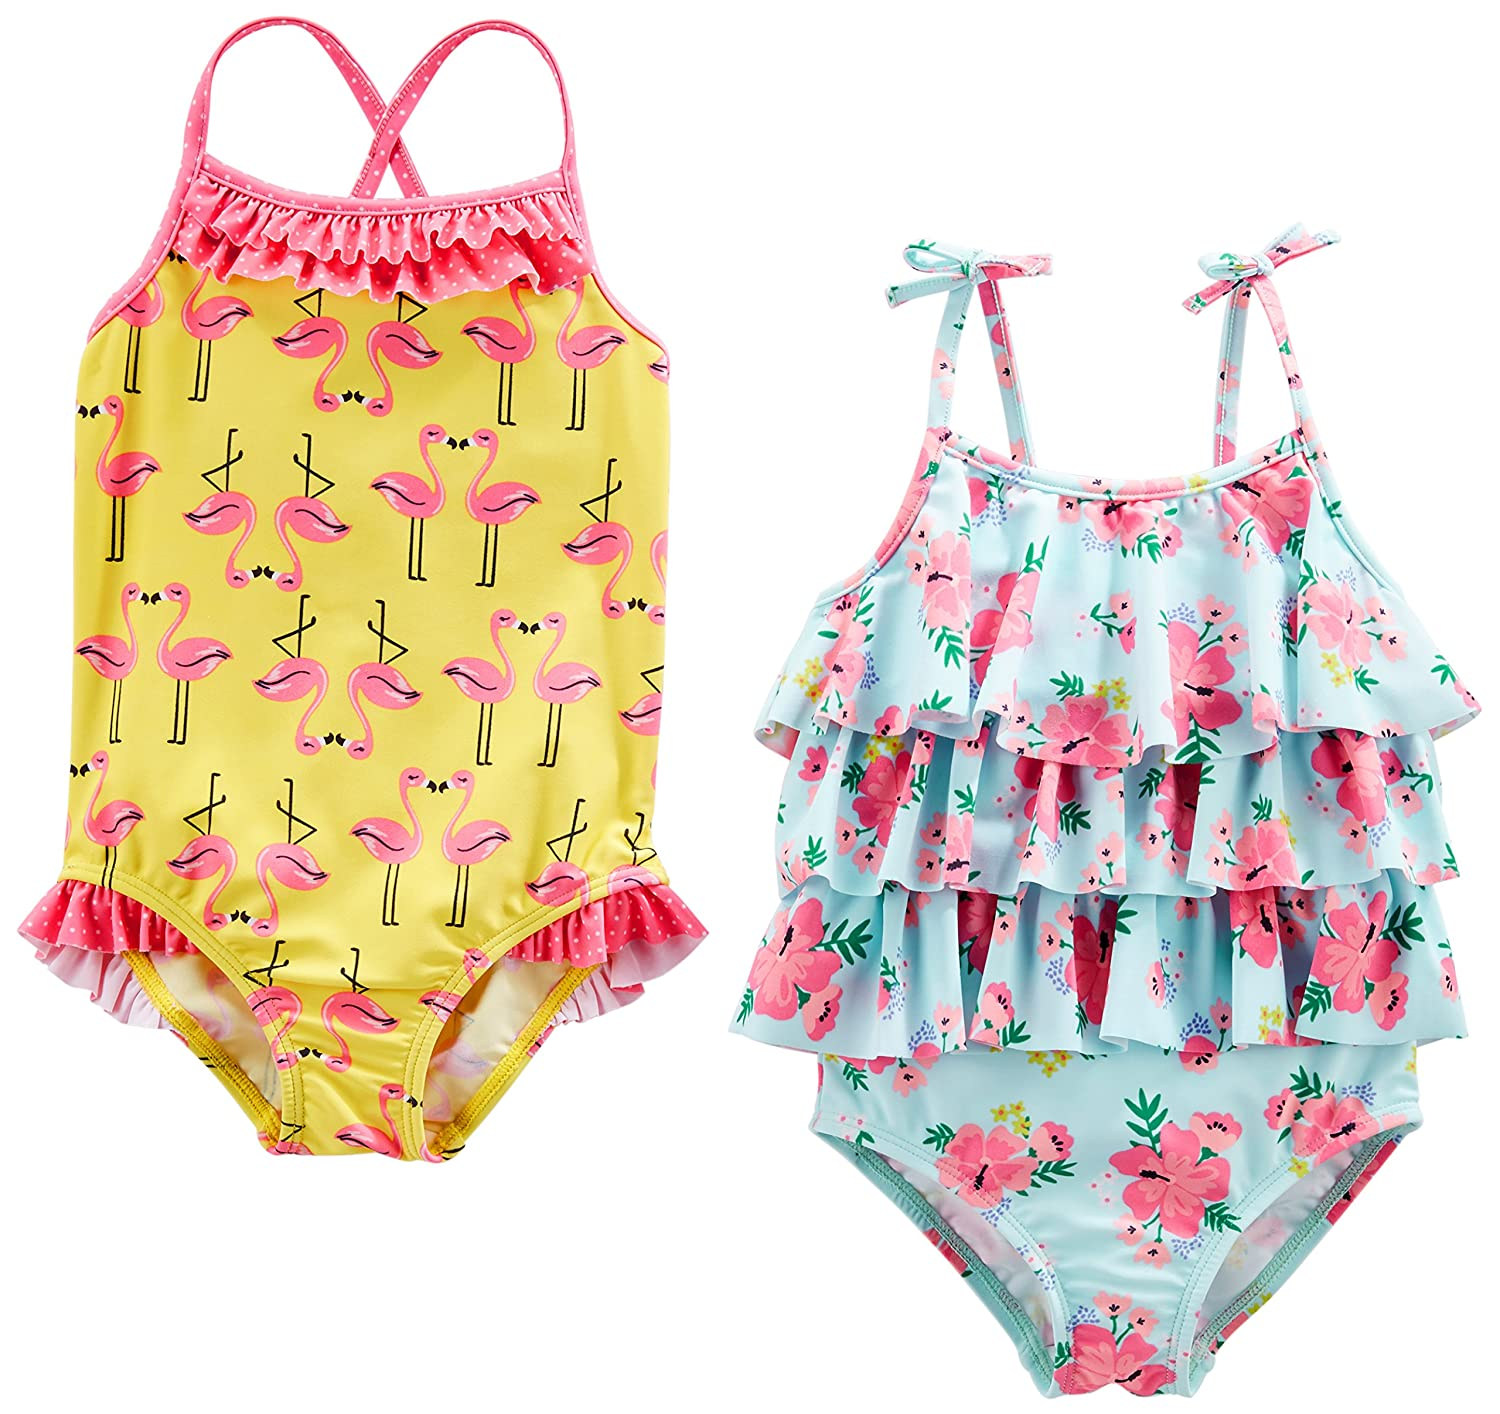 Simple Joys by Carters Baby and Toddler Girls 2-Pack One-Piece Swimsuits